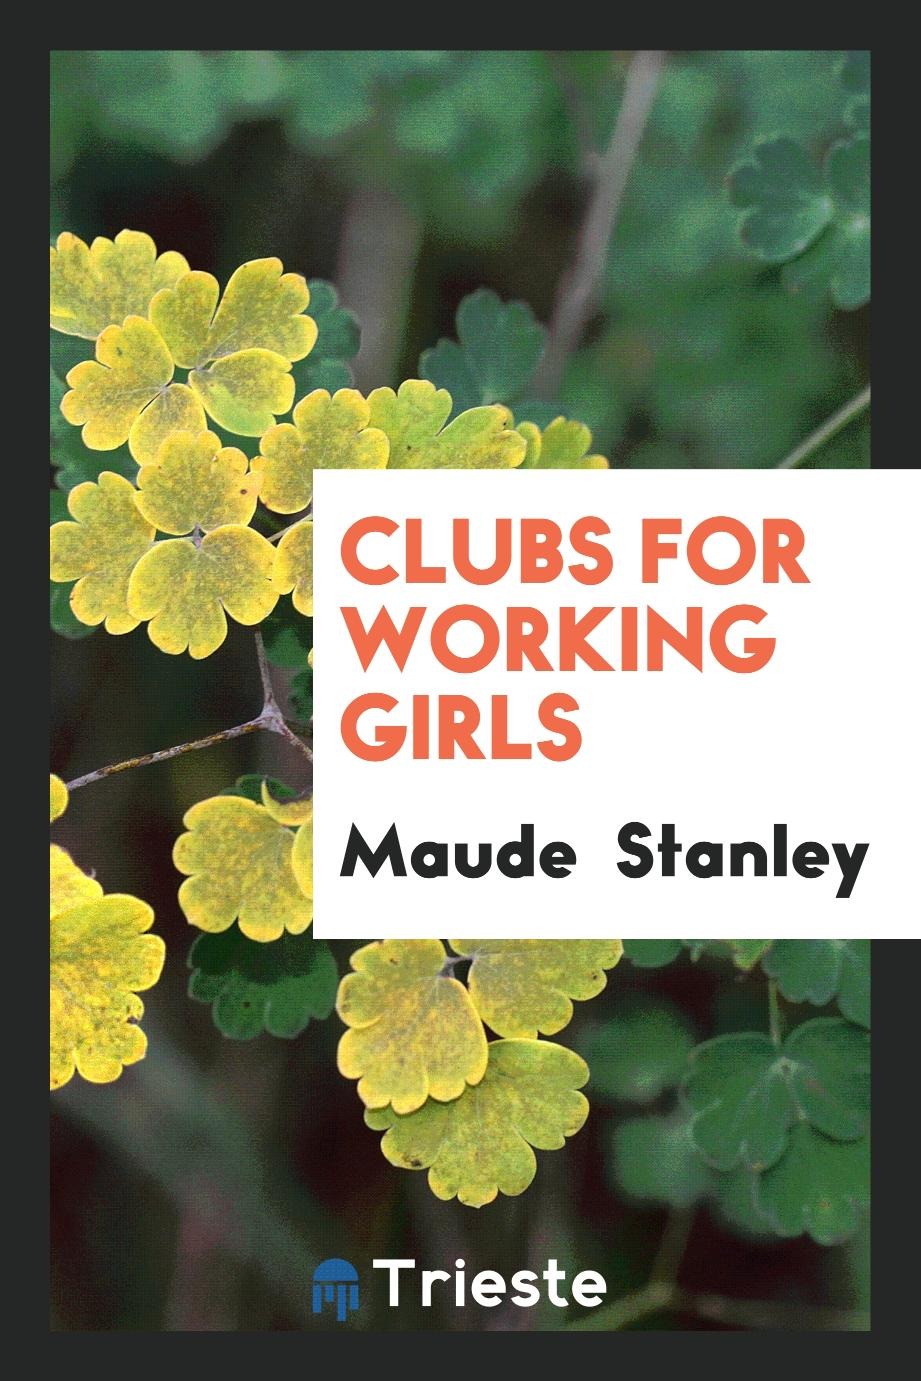 Clubs for working girls